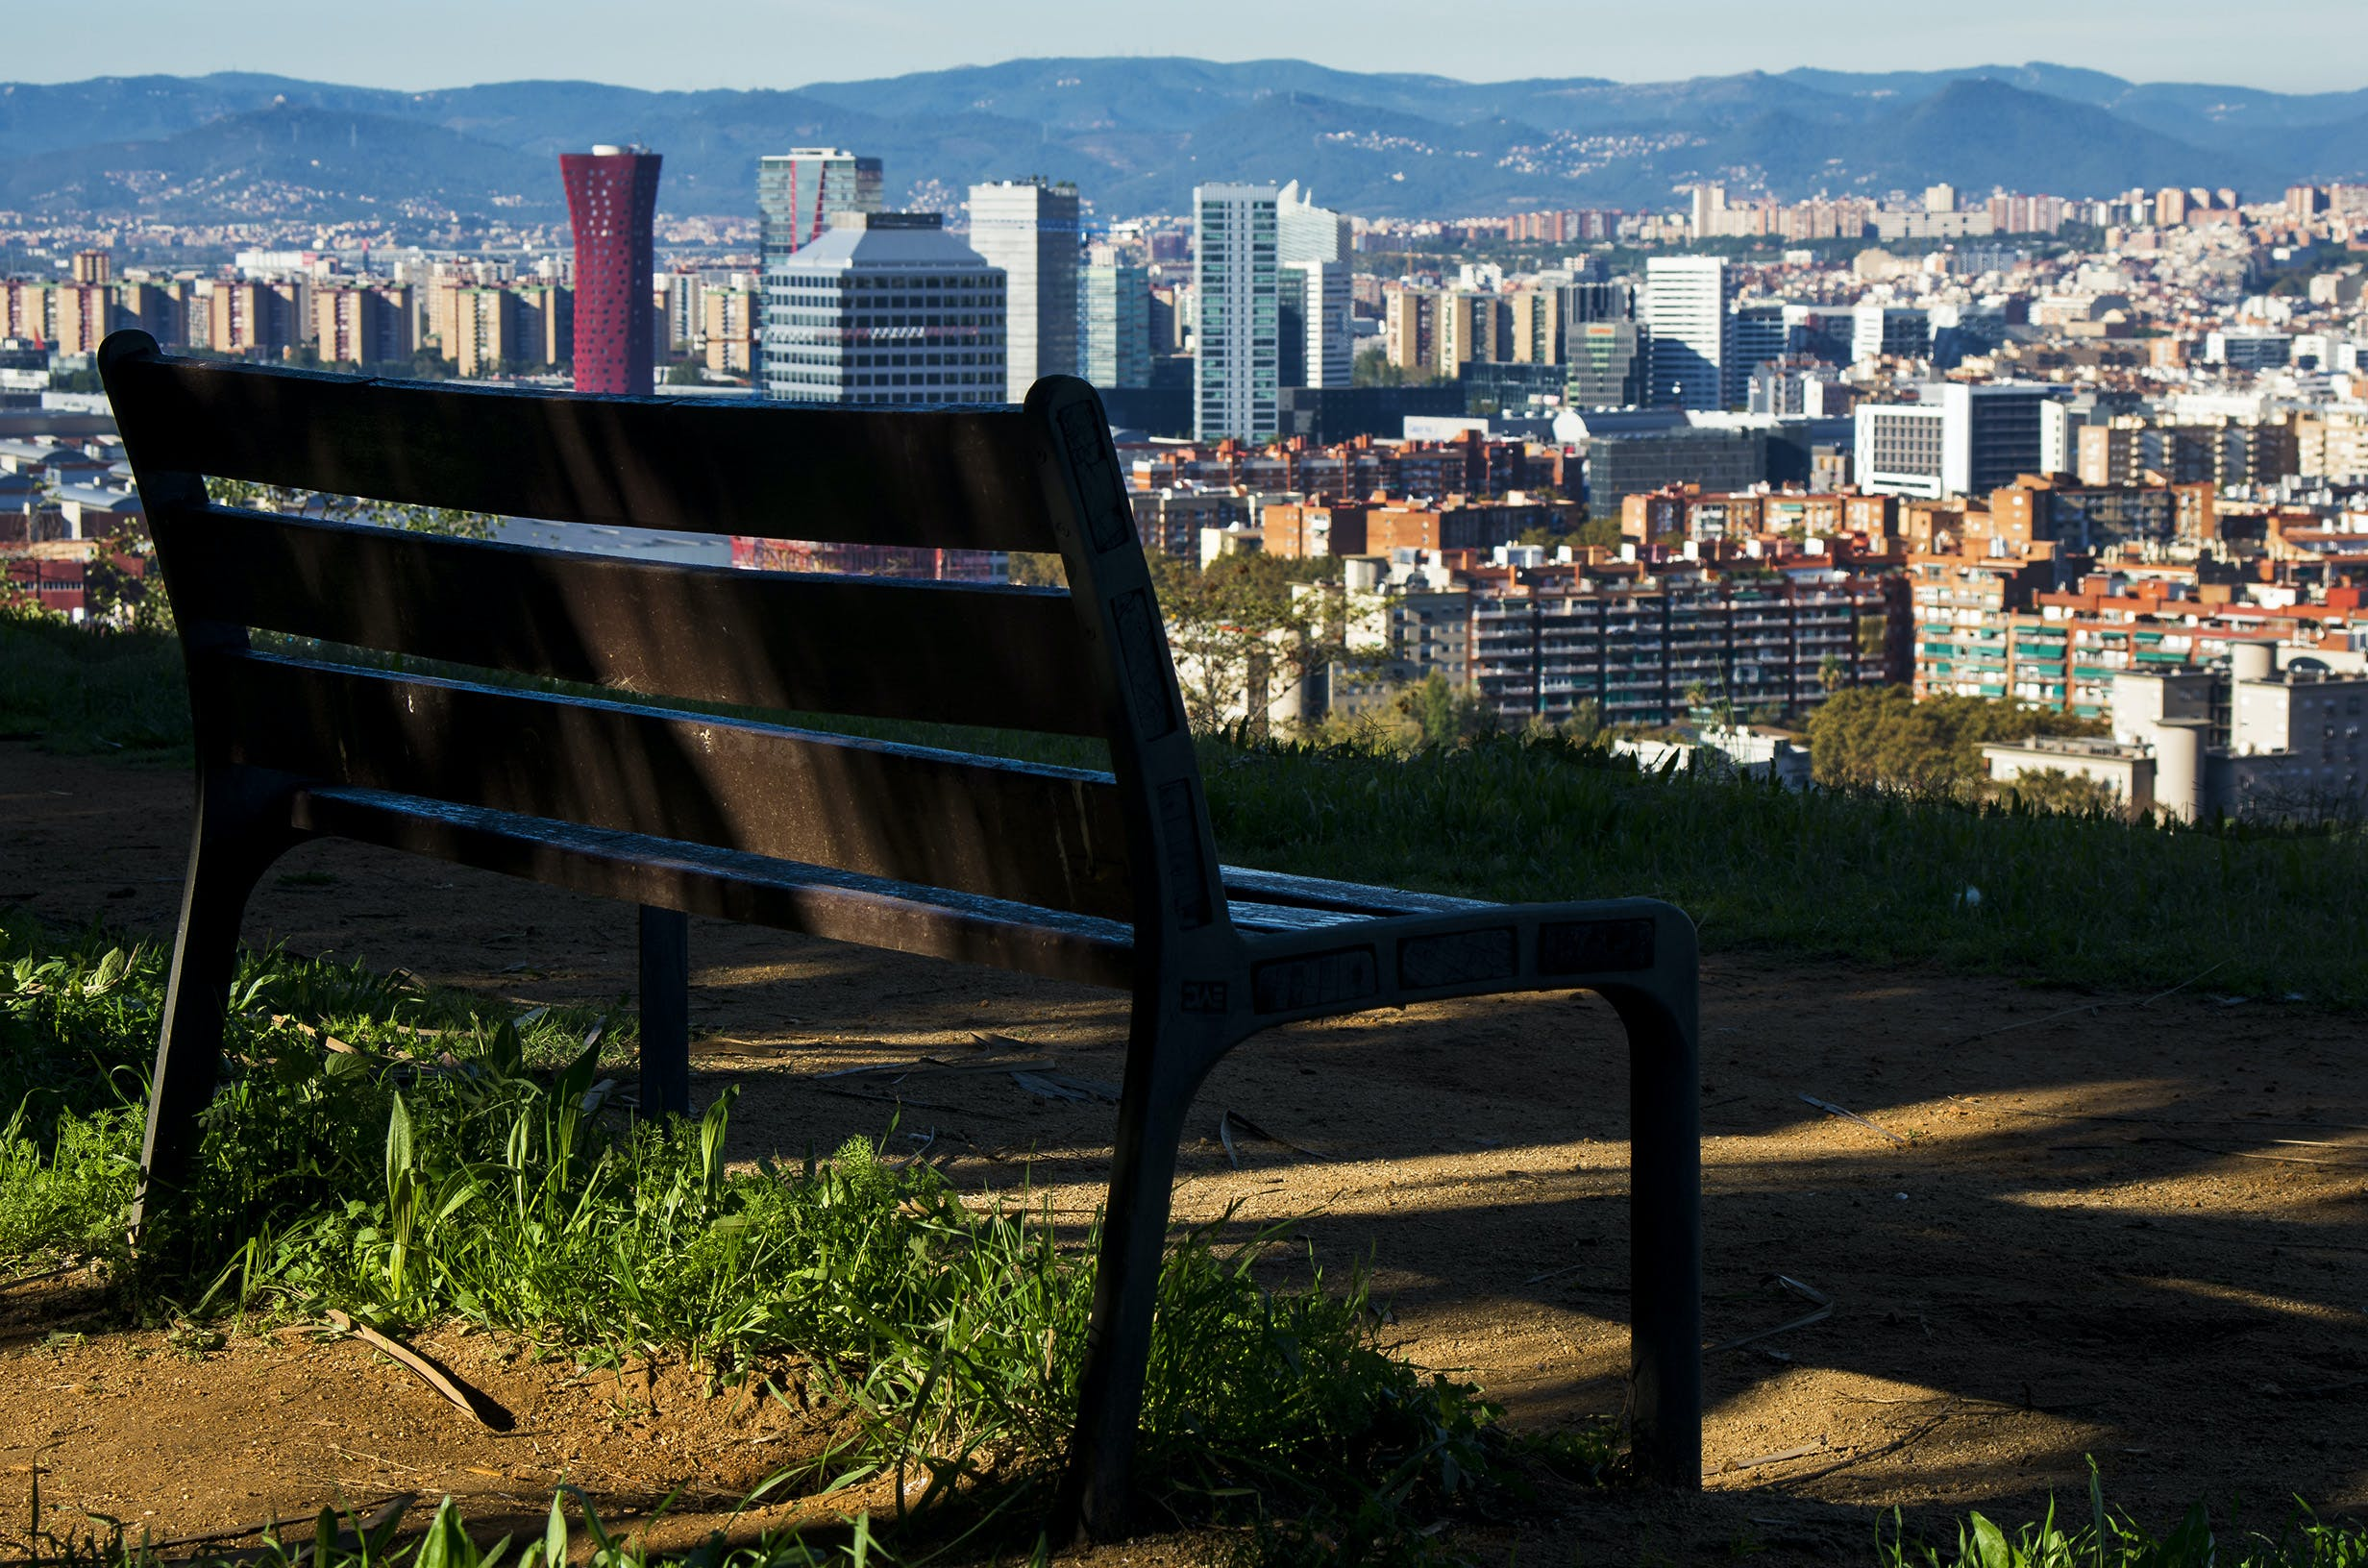 Brown Wooden Bench With Metal Frame Surrounded by Building Scenery